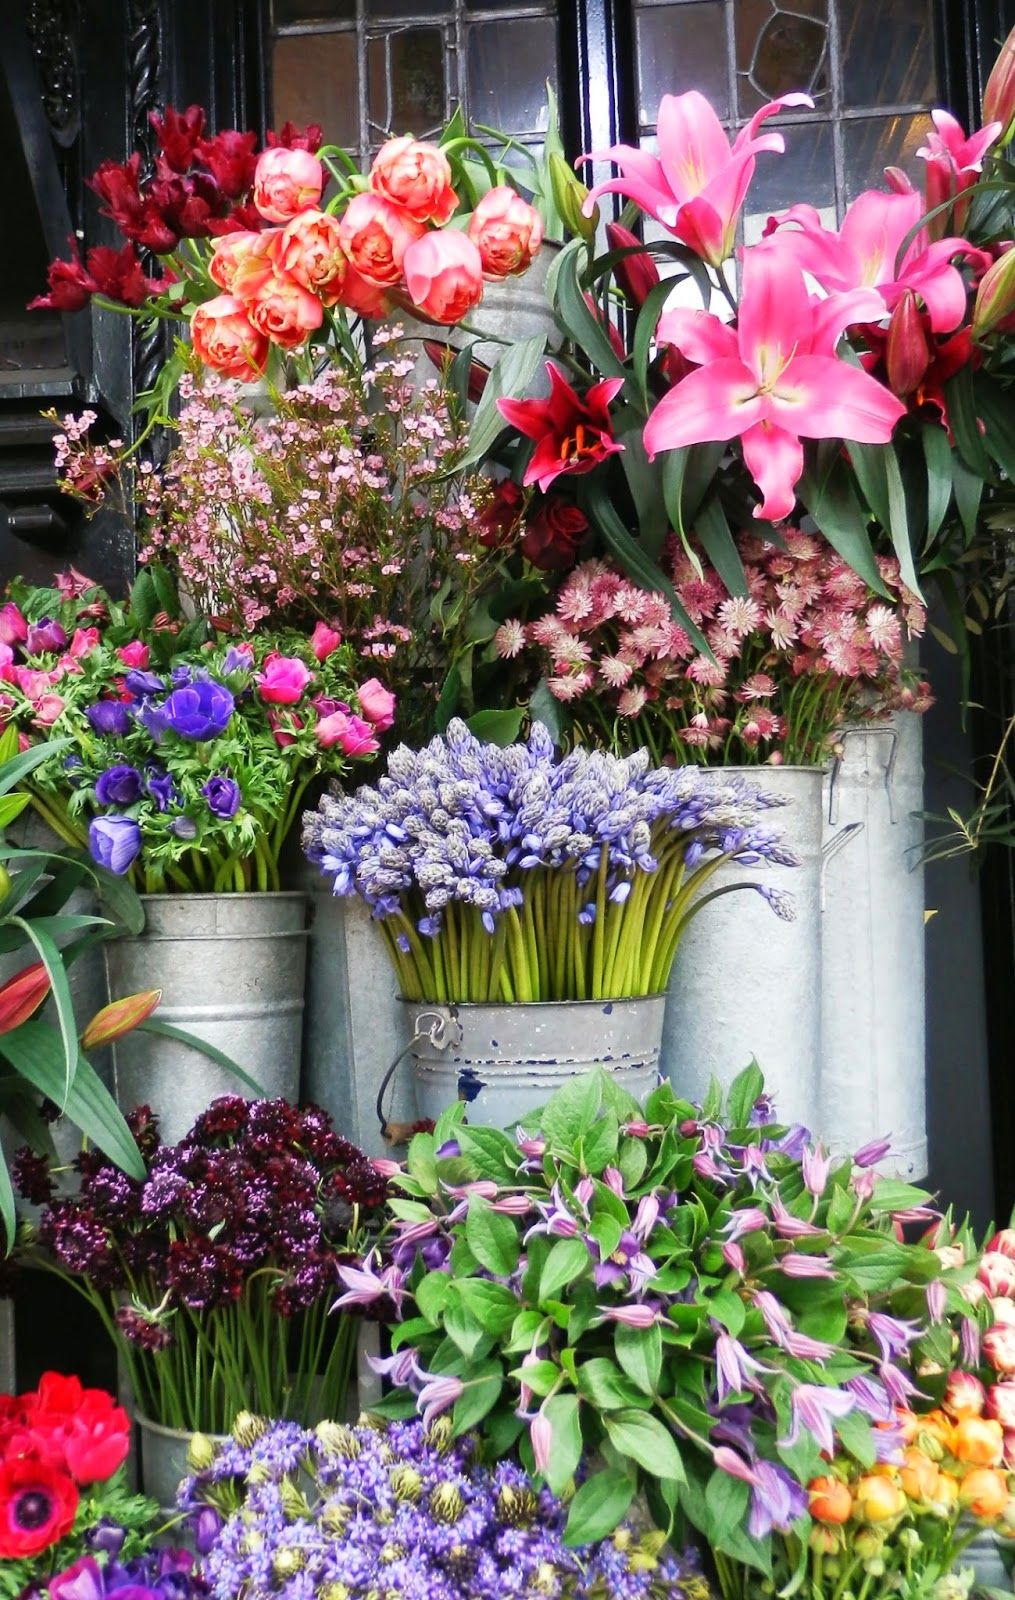 Beautiful flowers in buckets and can